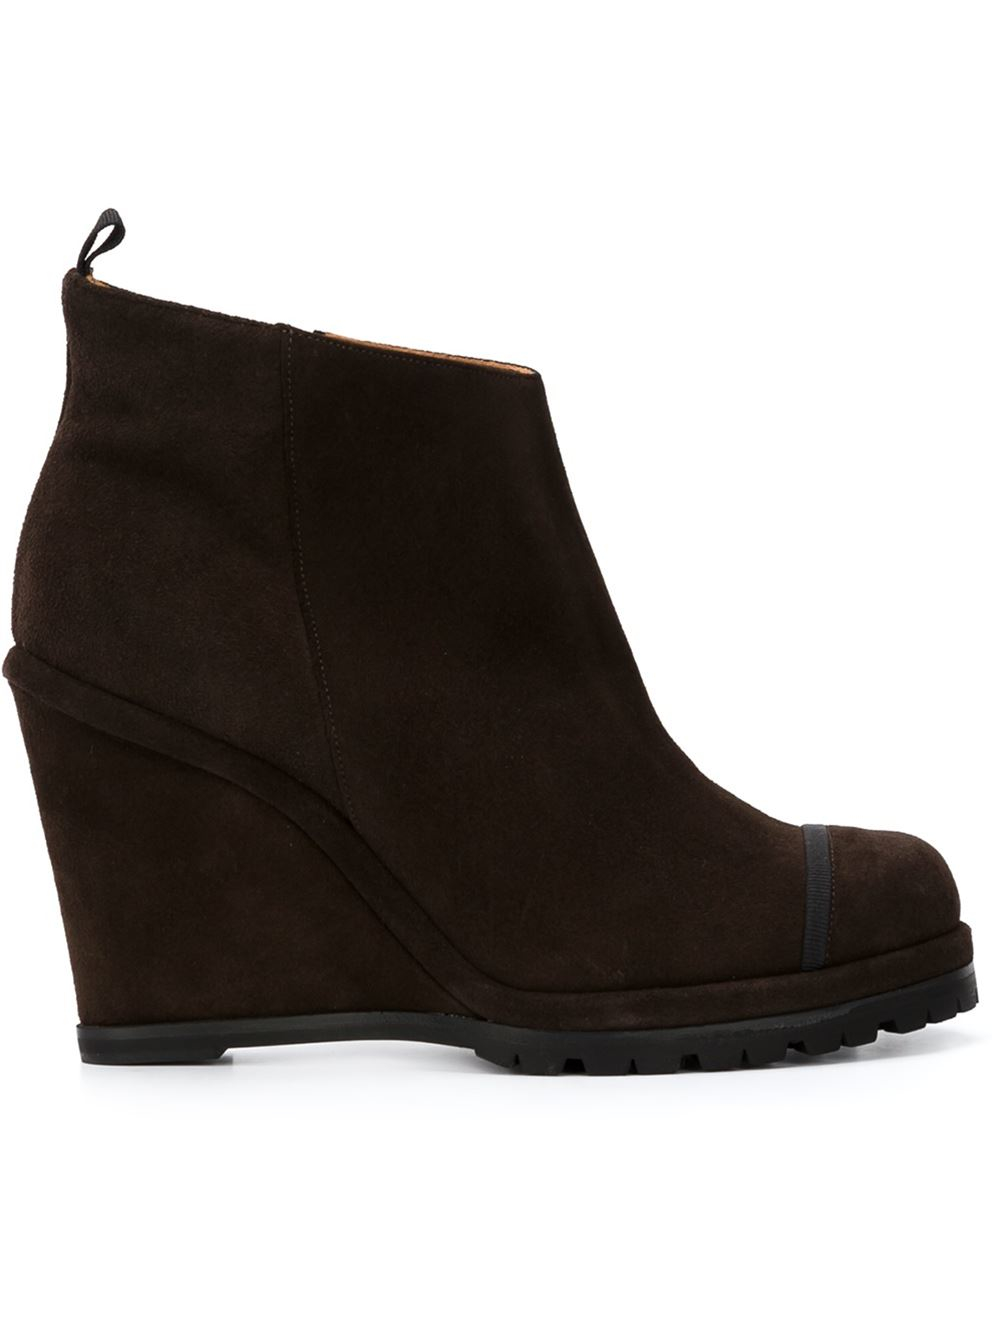 chuckies new york wedge ankle boots in black brown